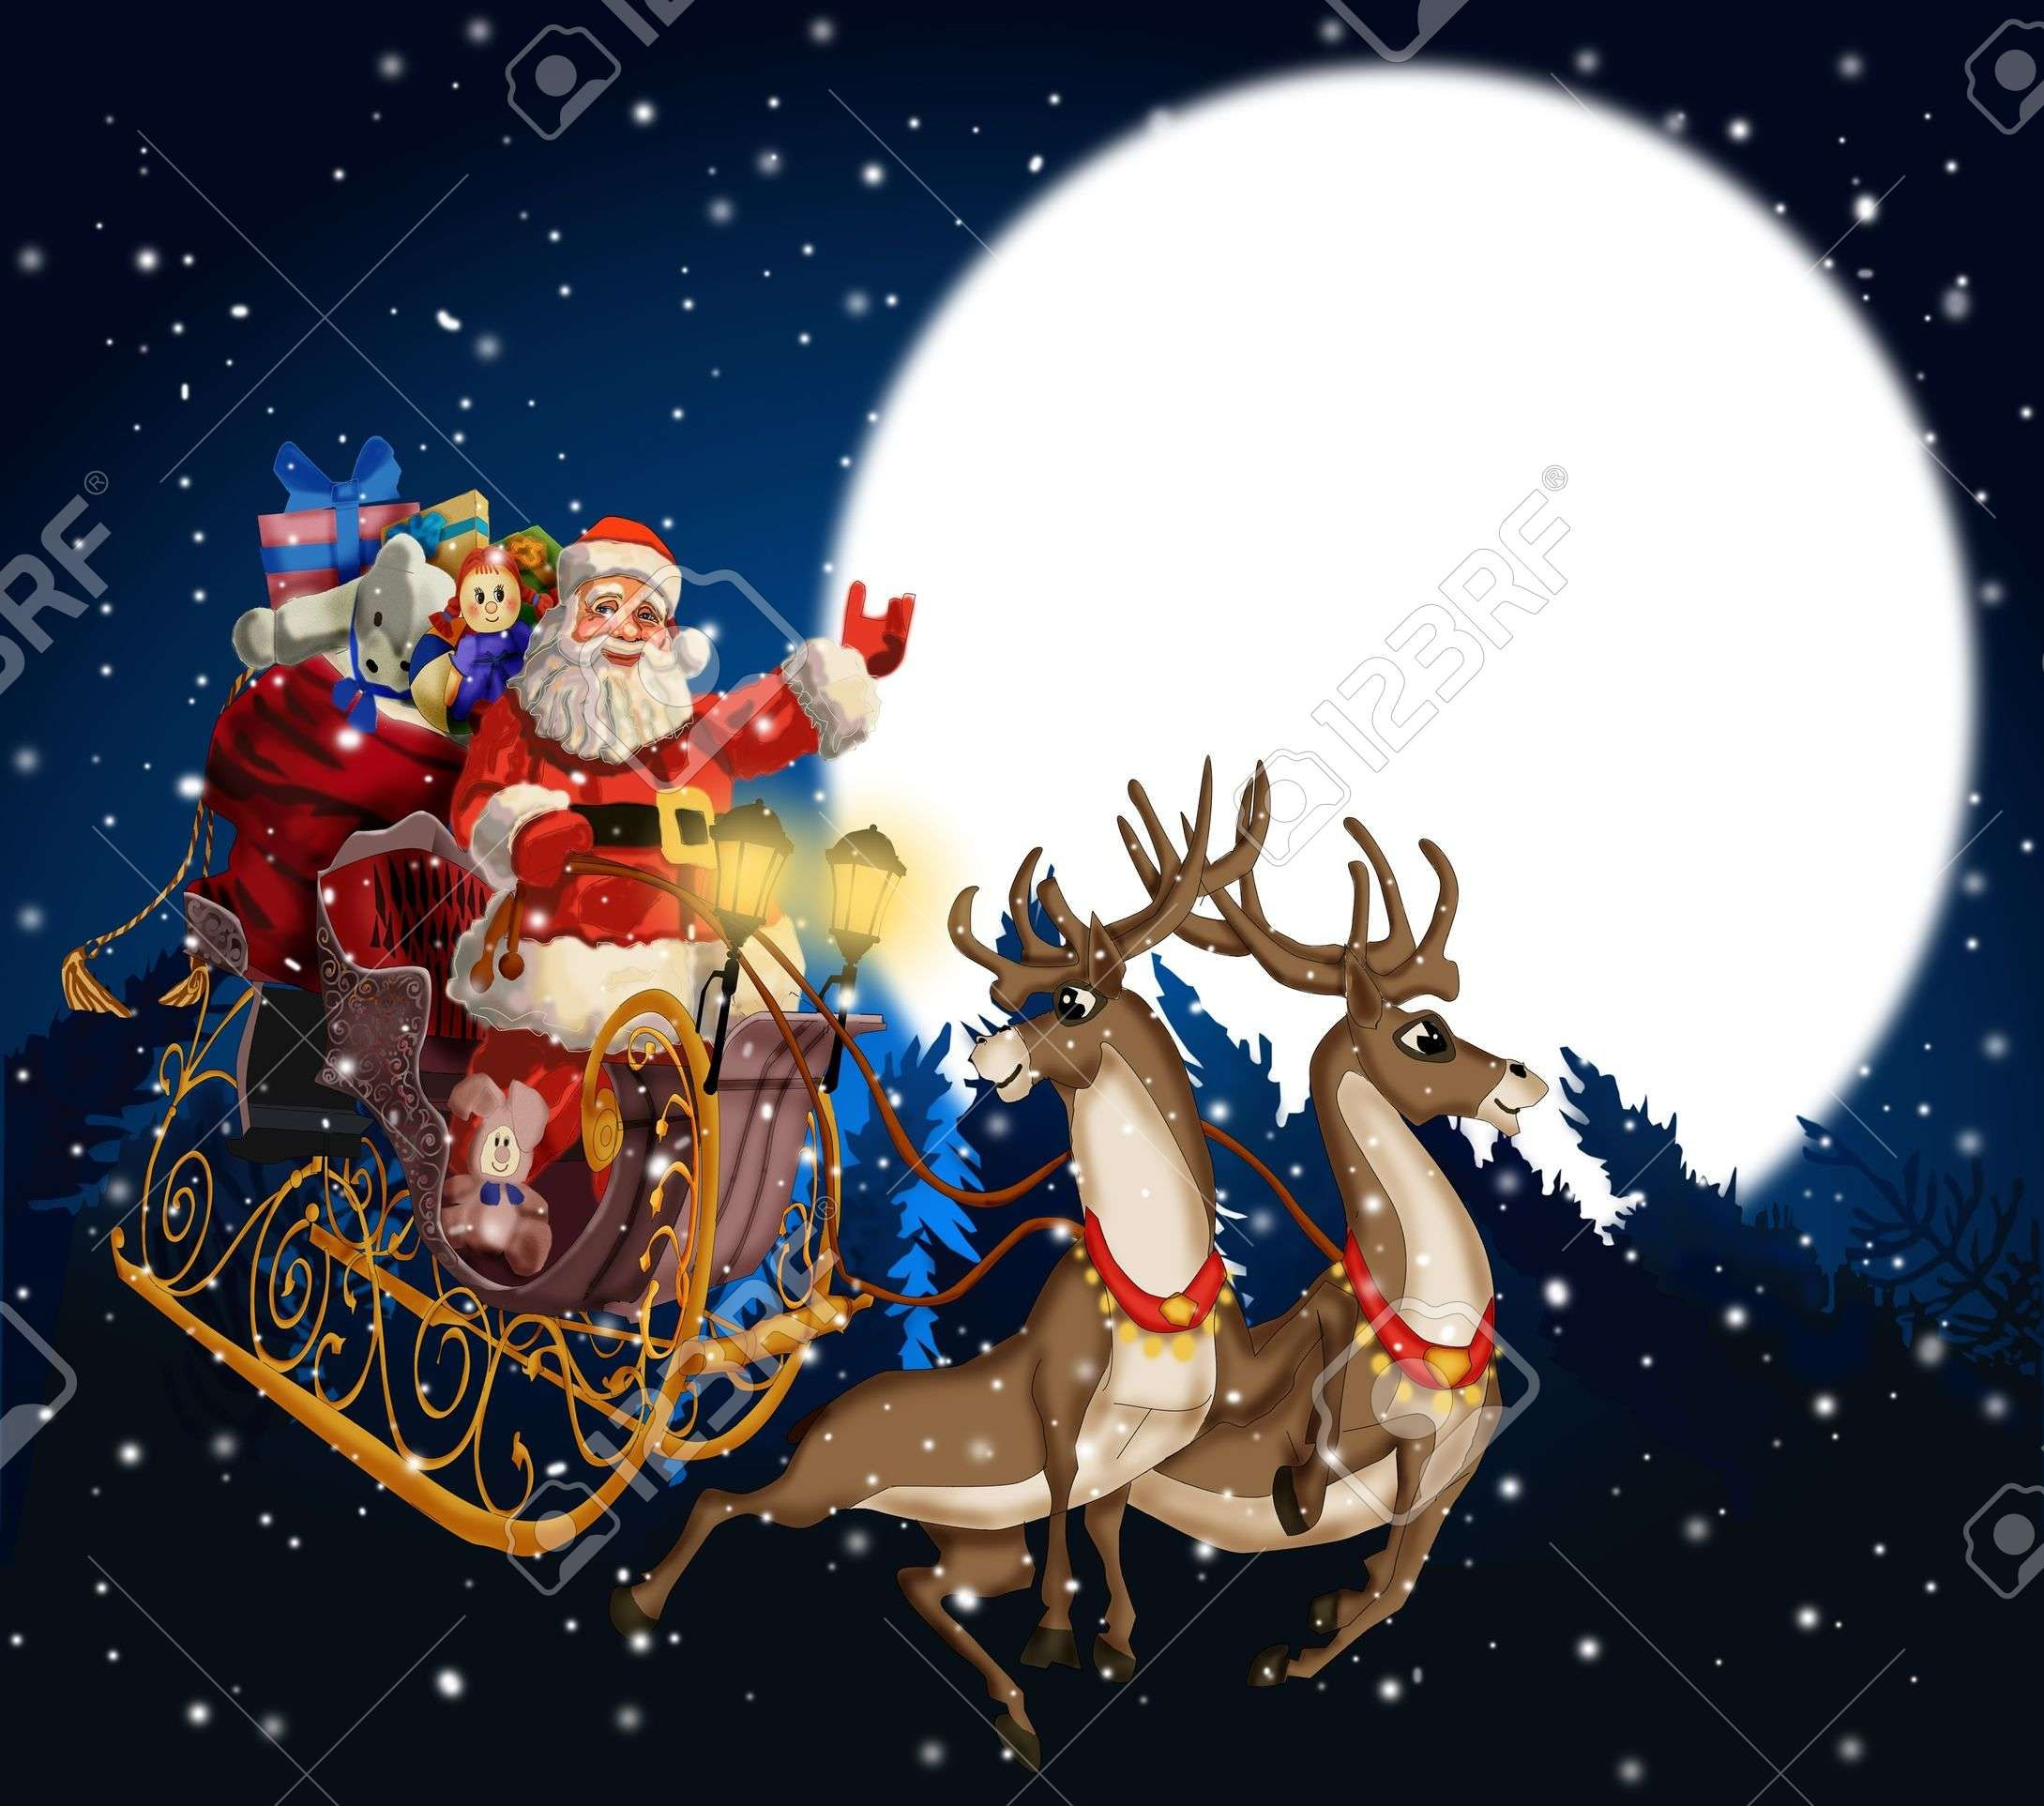 Christmas Background With Santa Claus In A Sleigh With Reindeer Christmas Wallpaper Backgrounds Santa Claus Wallpaper Santa And Reindeer